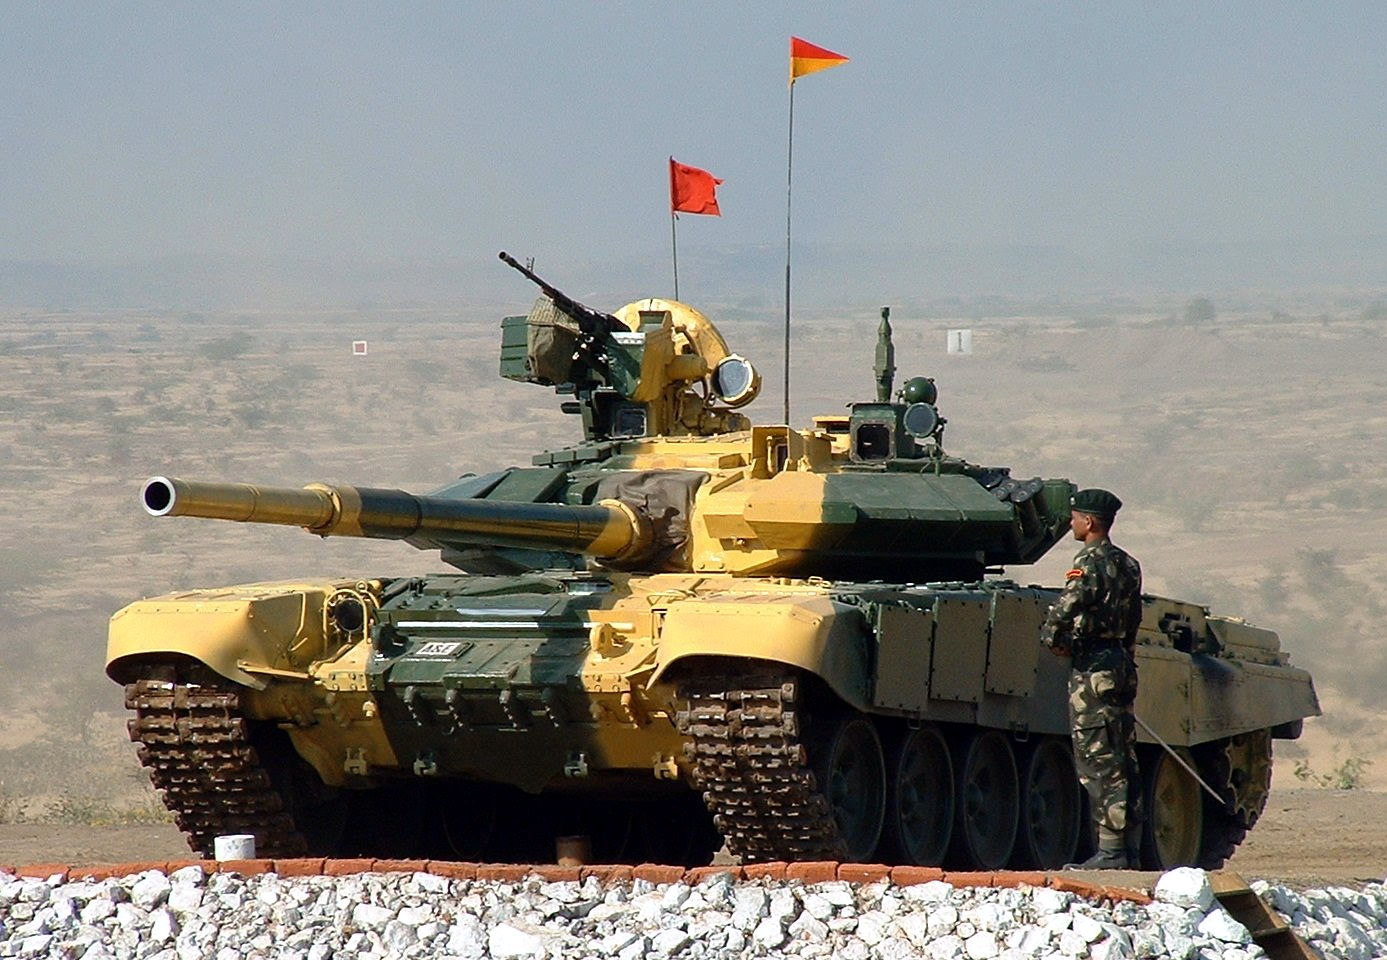 File:Indian Army T-90.jpg - Wikimedia Commons